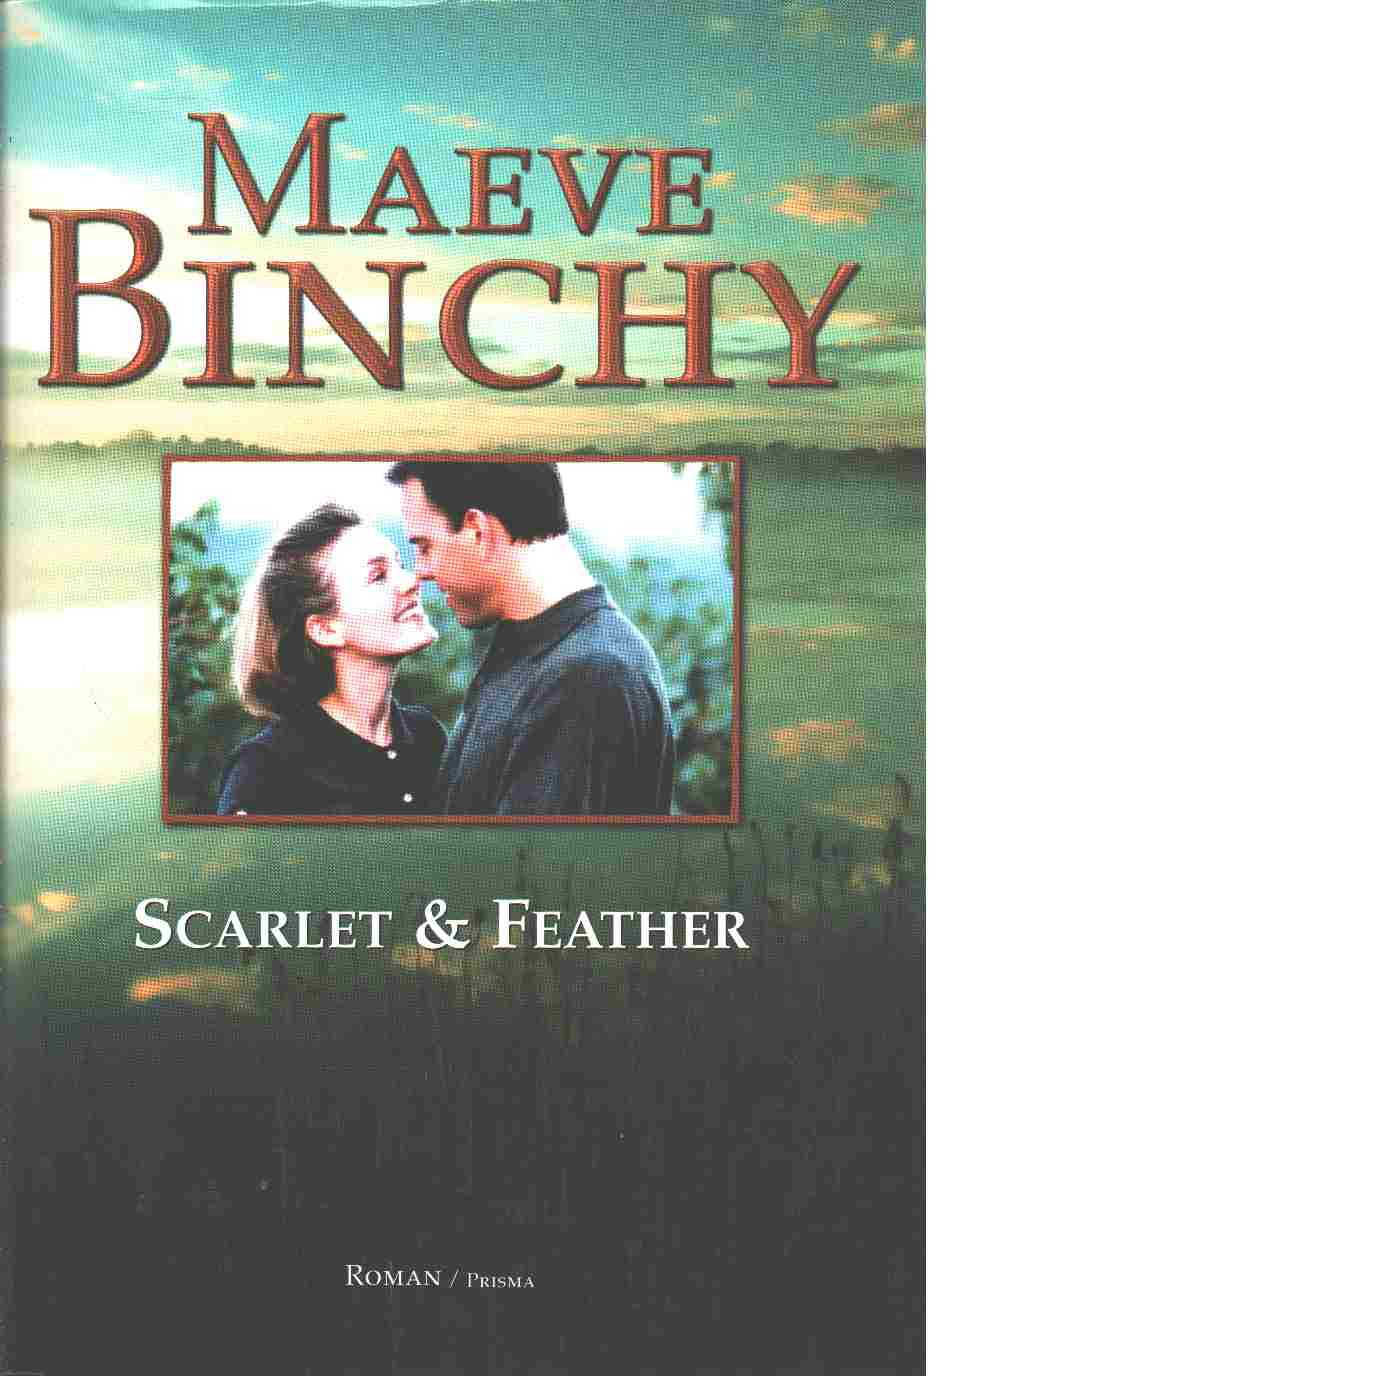 Scarlet & Feather - Binchy, Maeve